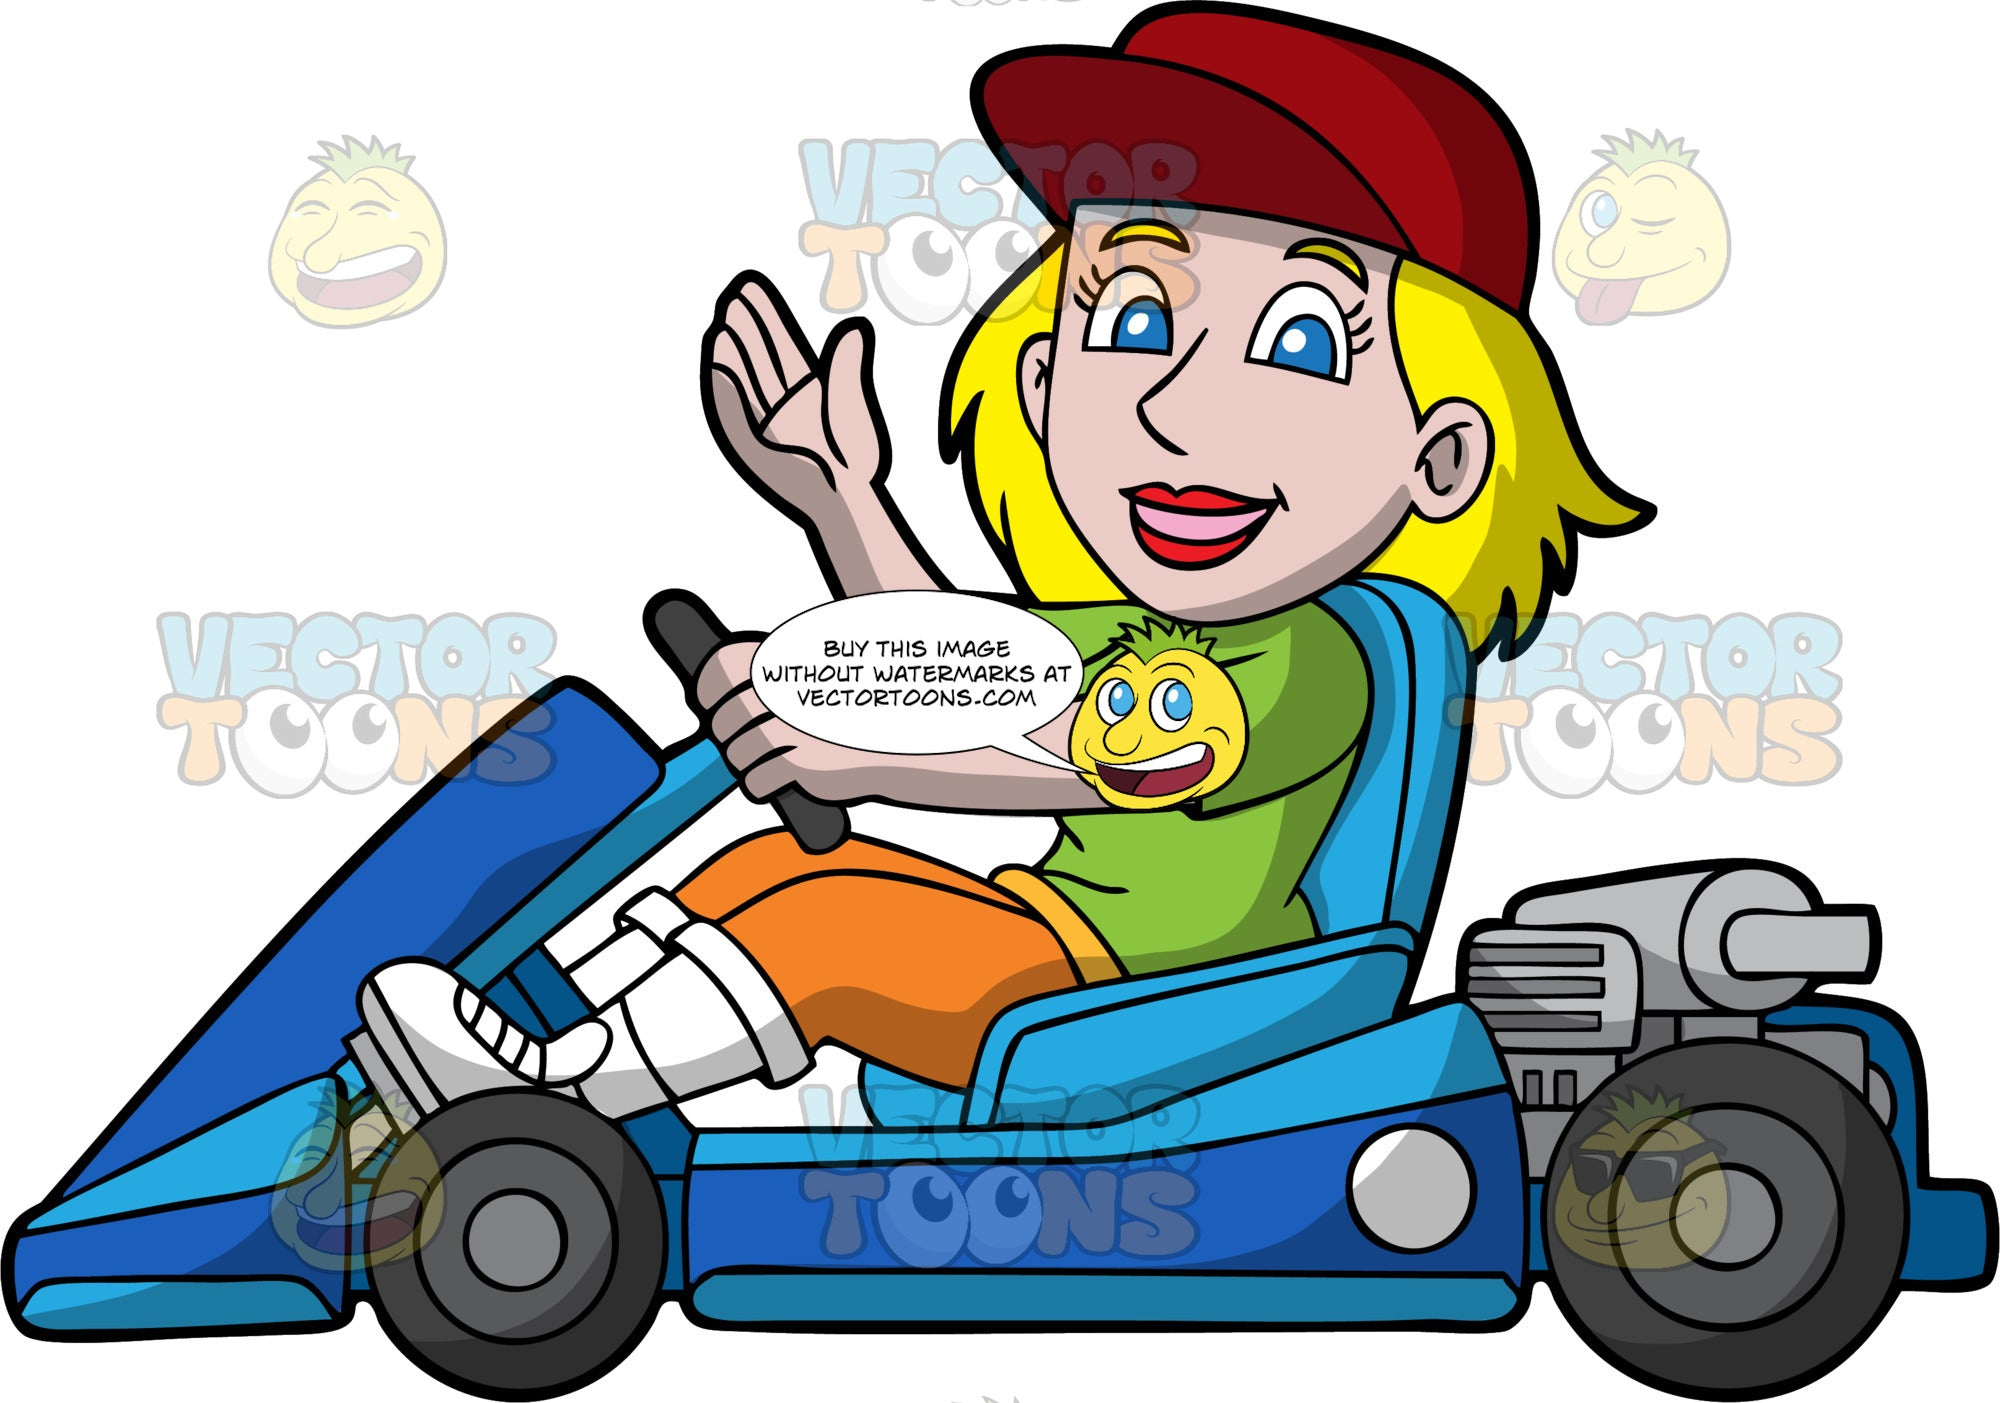 A Blonde Woman Driving A Blue Go-Kart. A woman with blonde hair and blue eyes, wearing a green shirt, orange pants, white boots and a red hat, waves with one hand as she holds onto the wheel of her go-kart with the other hand